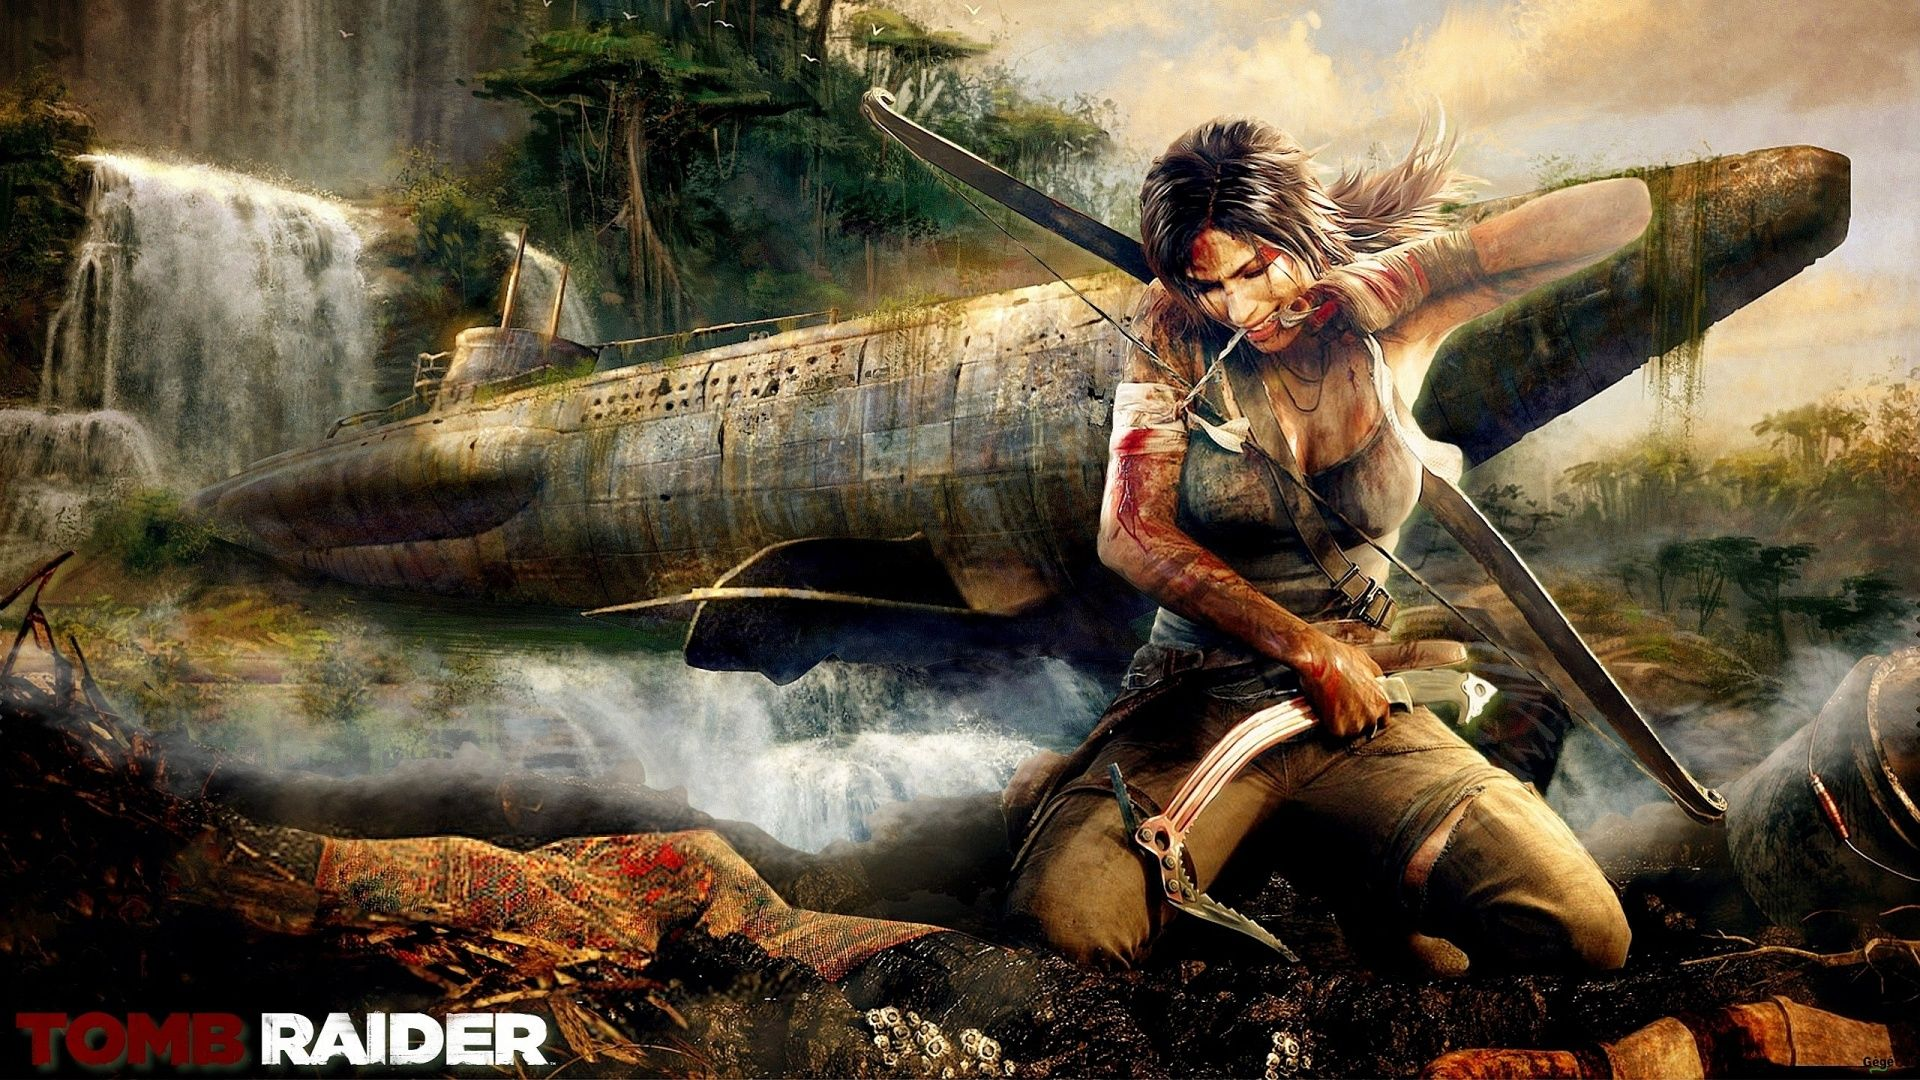 Обои лара крофт, reborn, crystal dynamics, square enix, tomb raider, lara croft. Игры foto 8